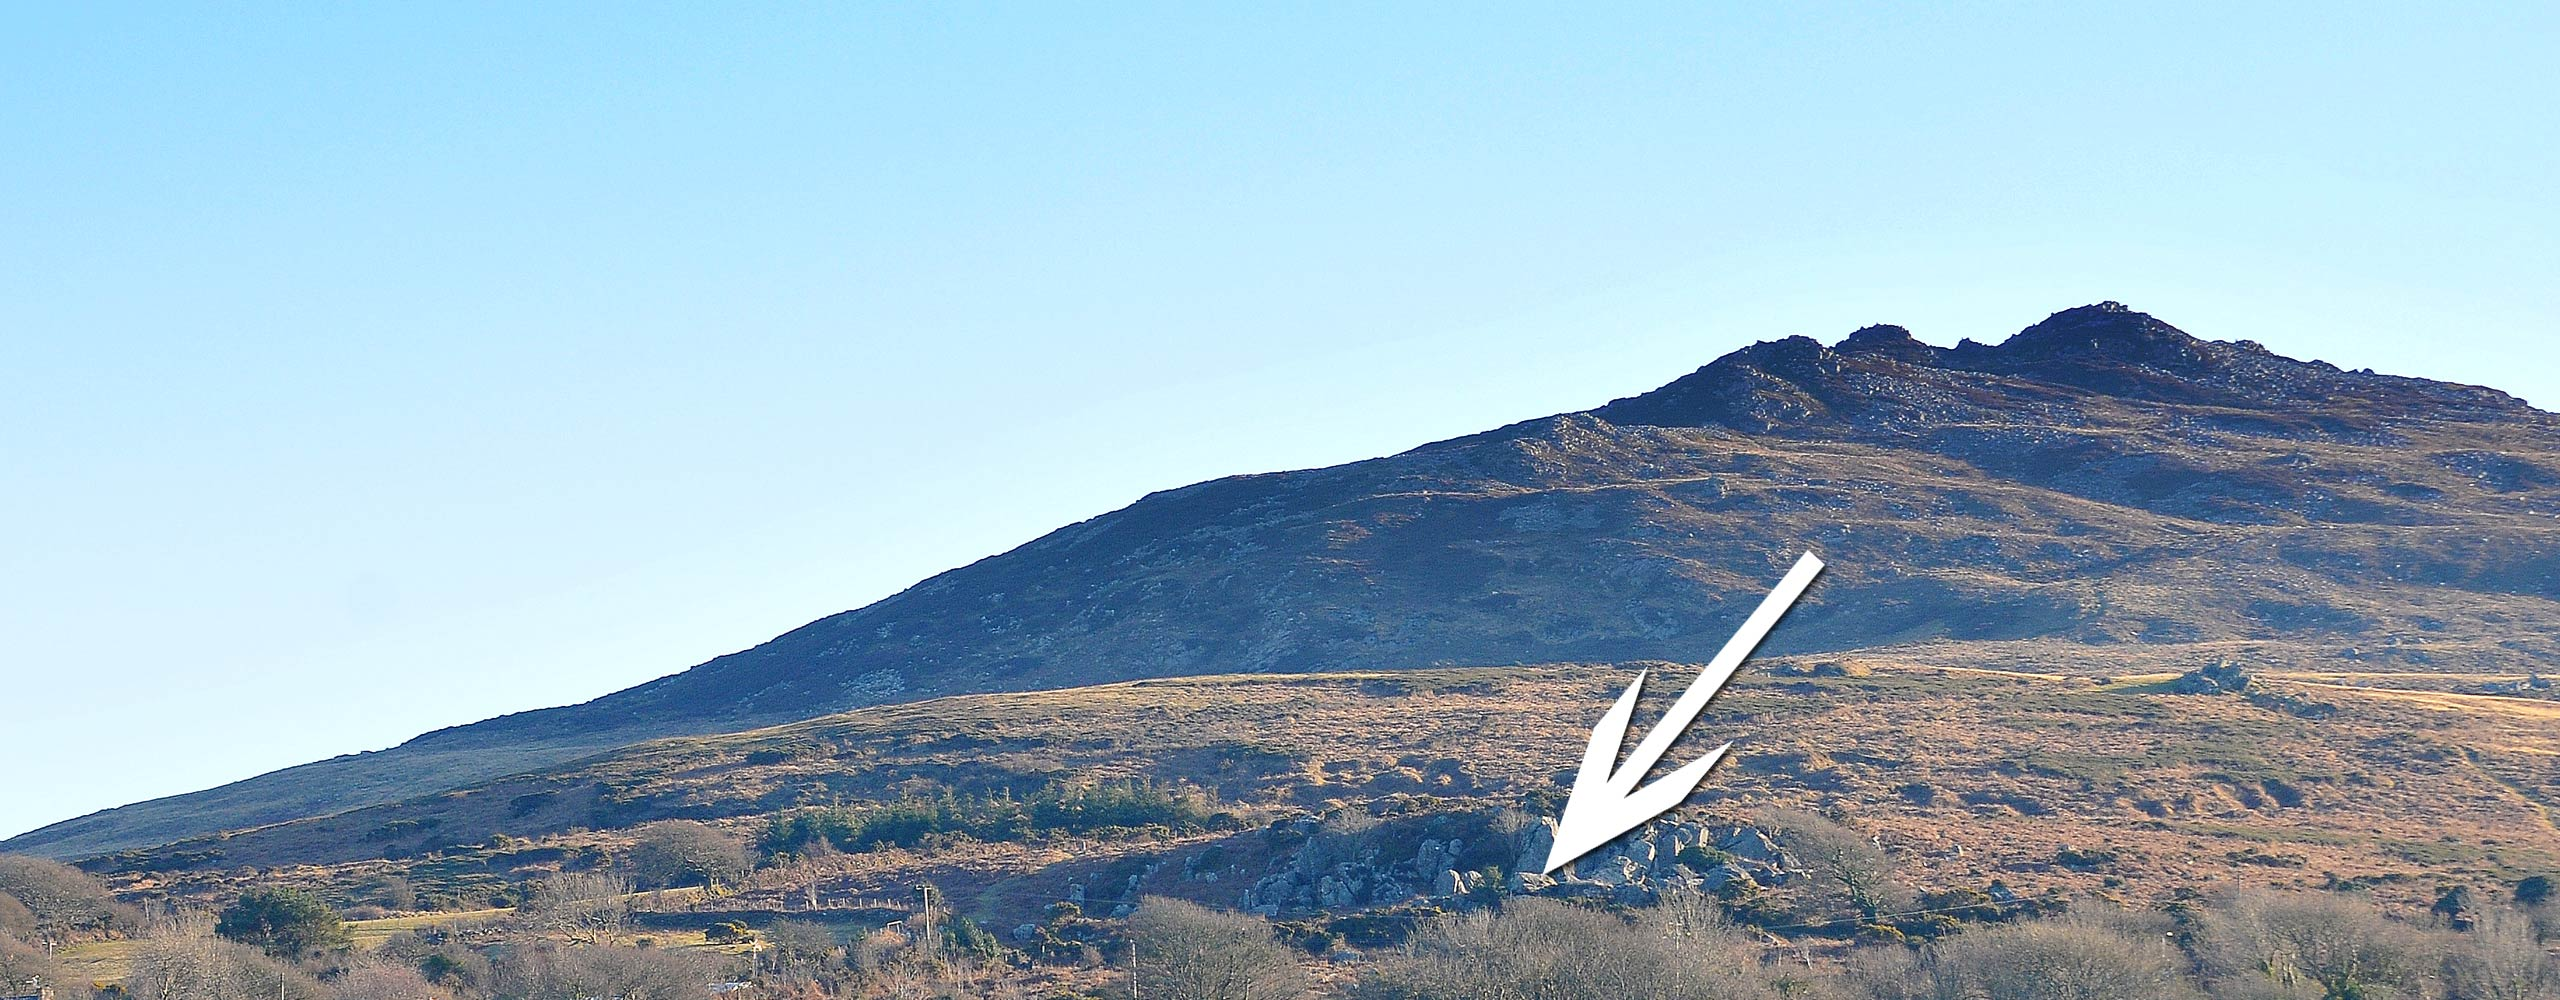 Image showing the location of the wishing well on Carningli Mountain